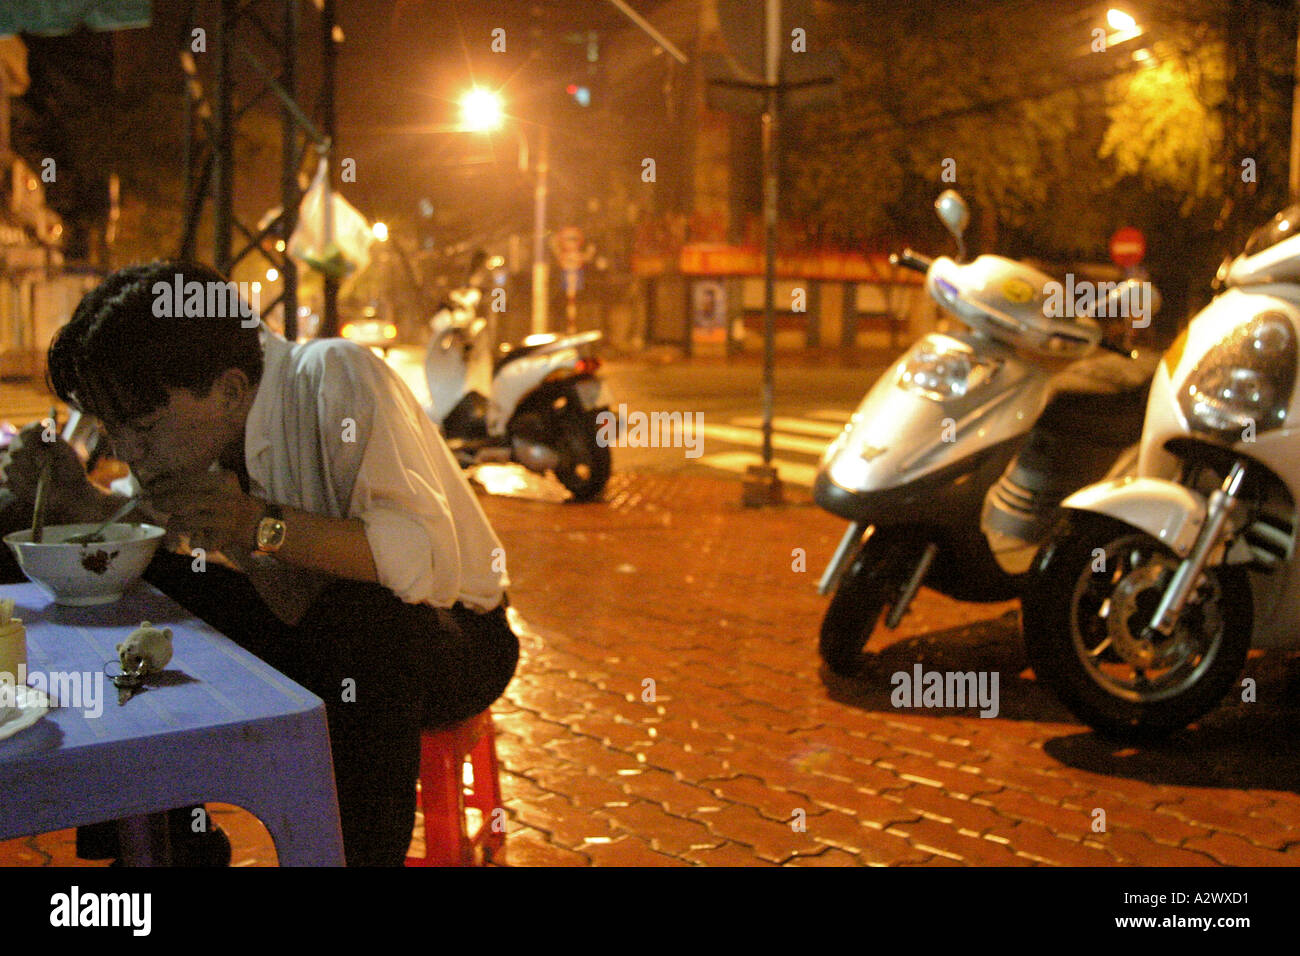 Stock Photo - A man eating at a late night food stall with scooters  on the pavement, Saigon, Vietnam